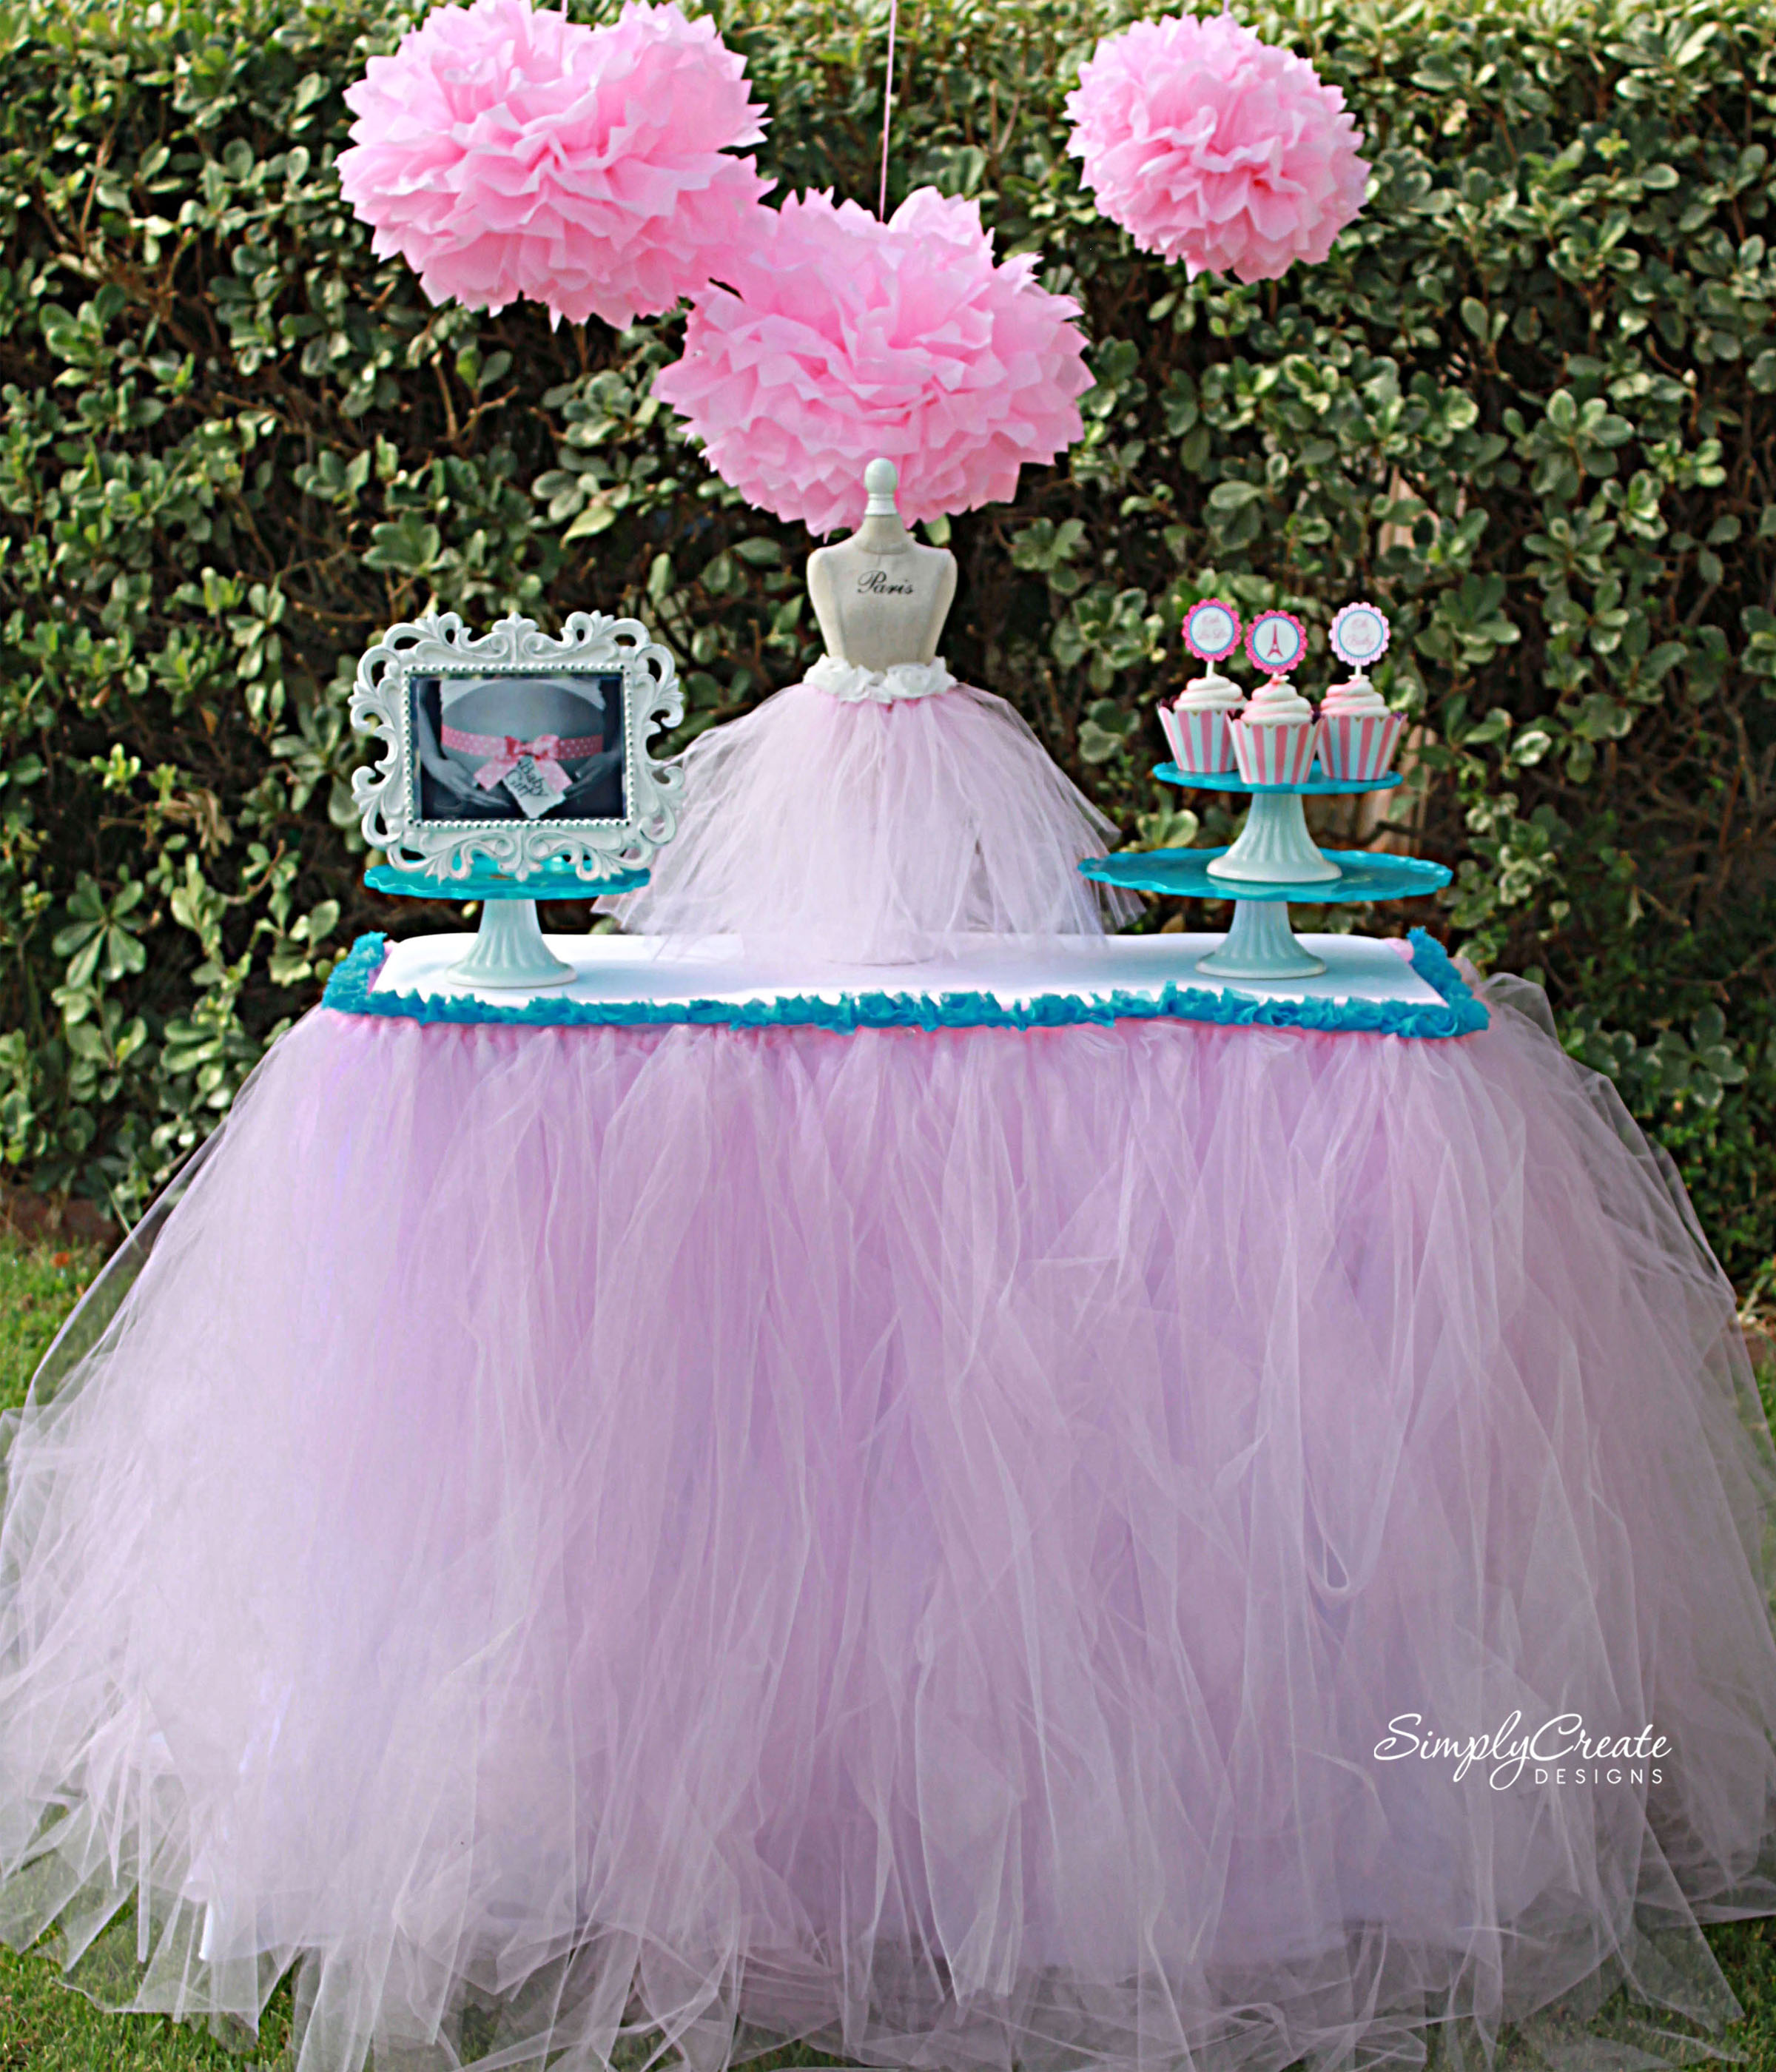 No Sew Tulle Table Skirt DIY CatchMyPartycom